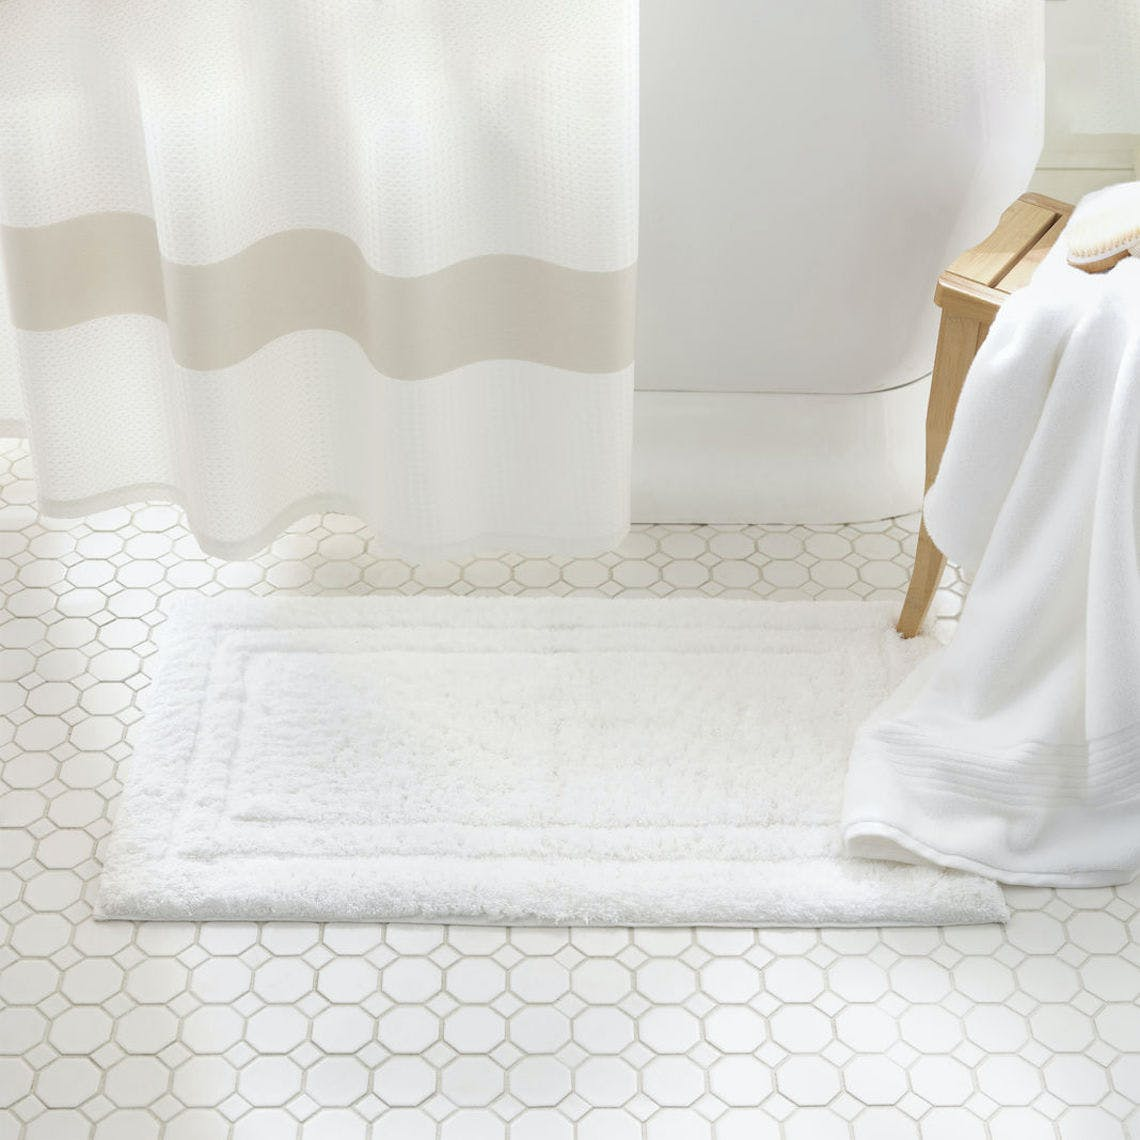 Plush Bath Rug As Low As 10 52 At Jcpenney Reg 28 The Krazy Coupon Lady